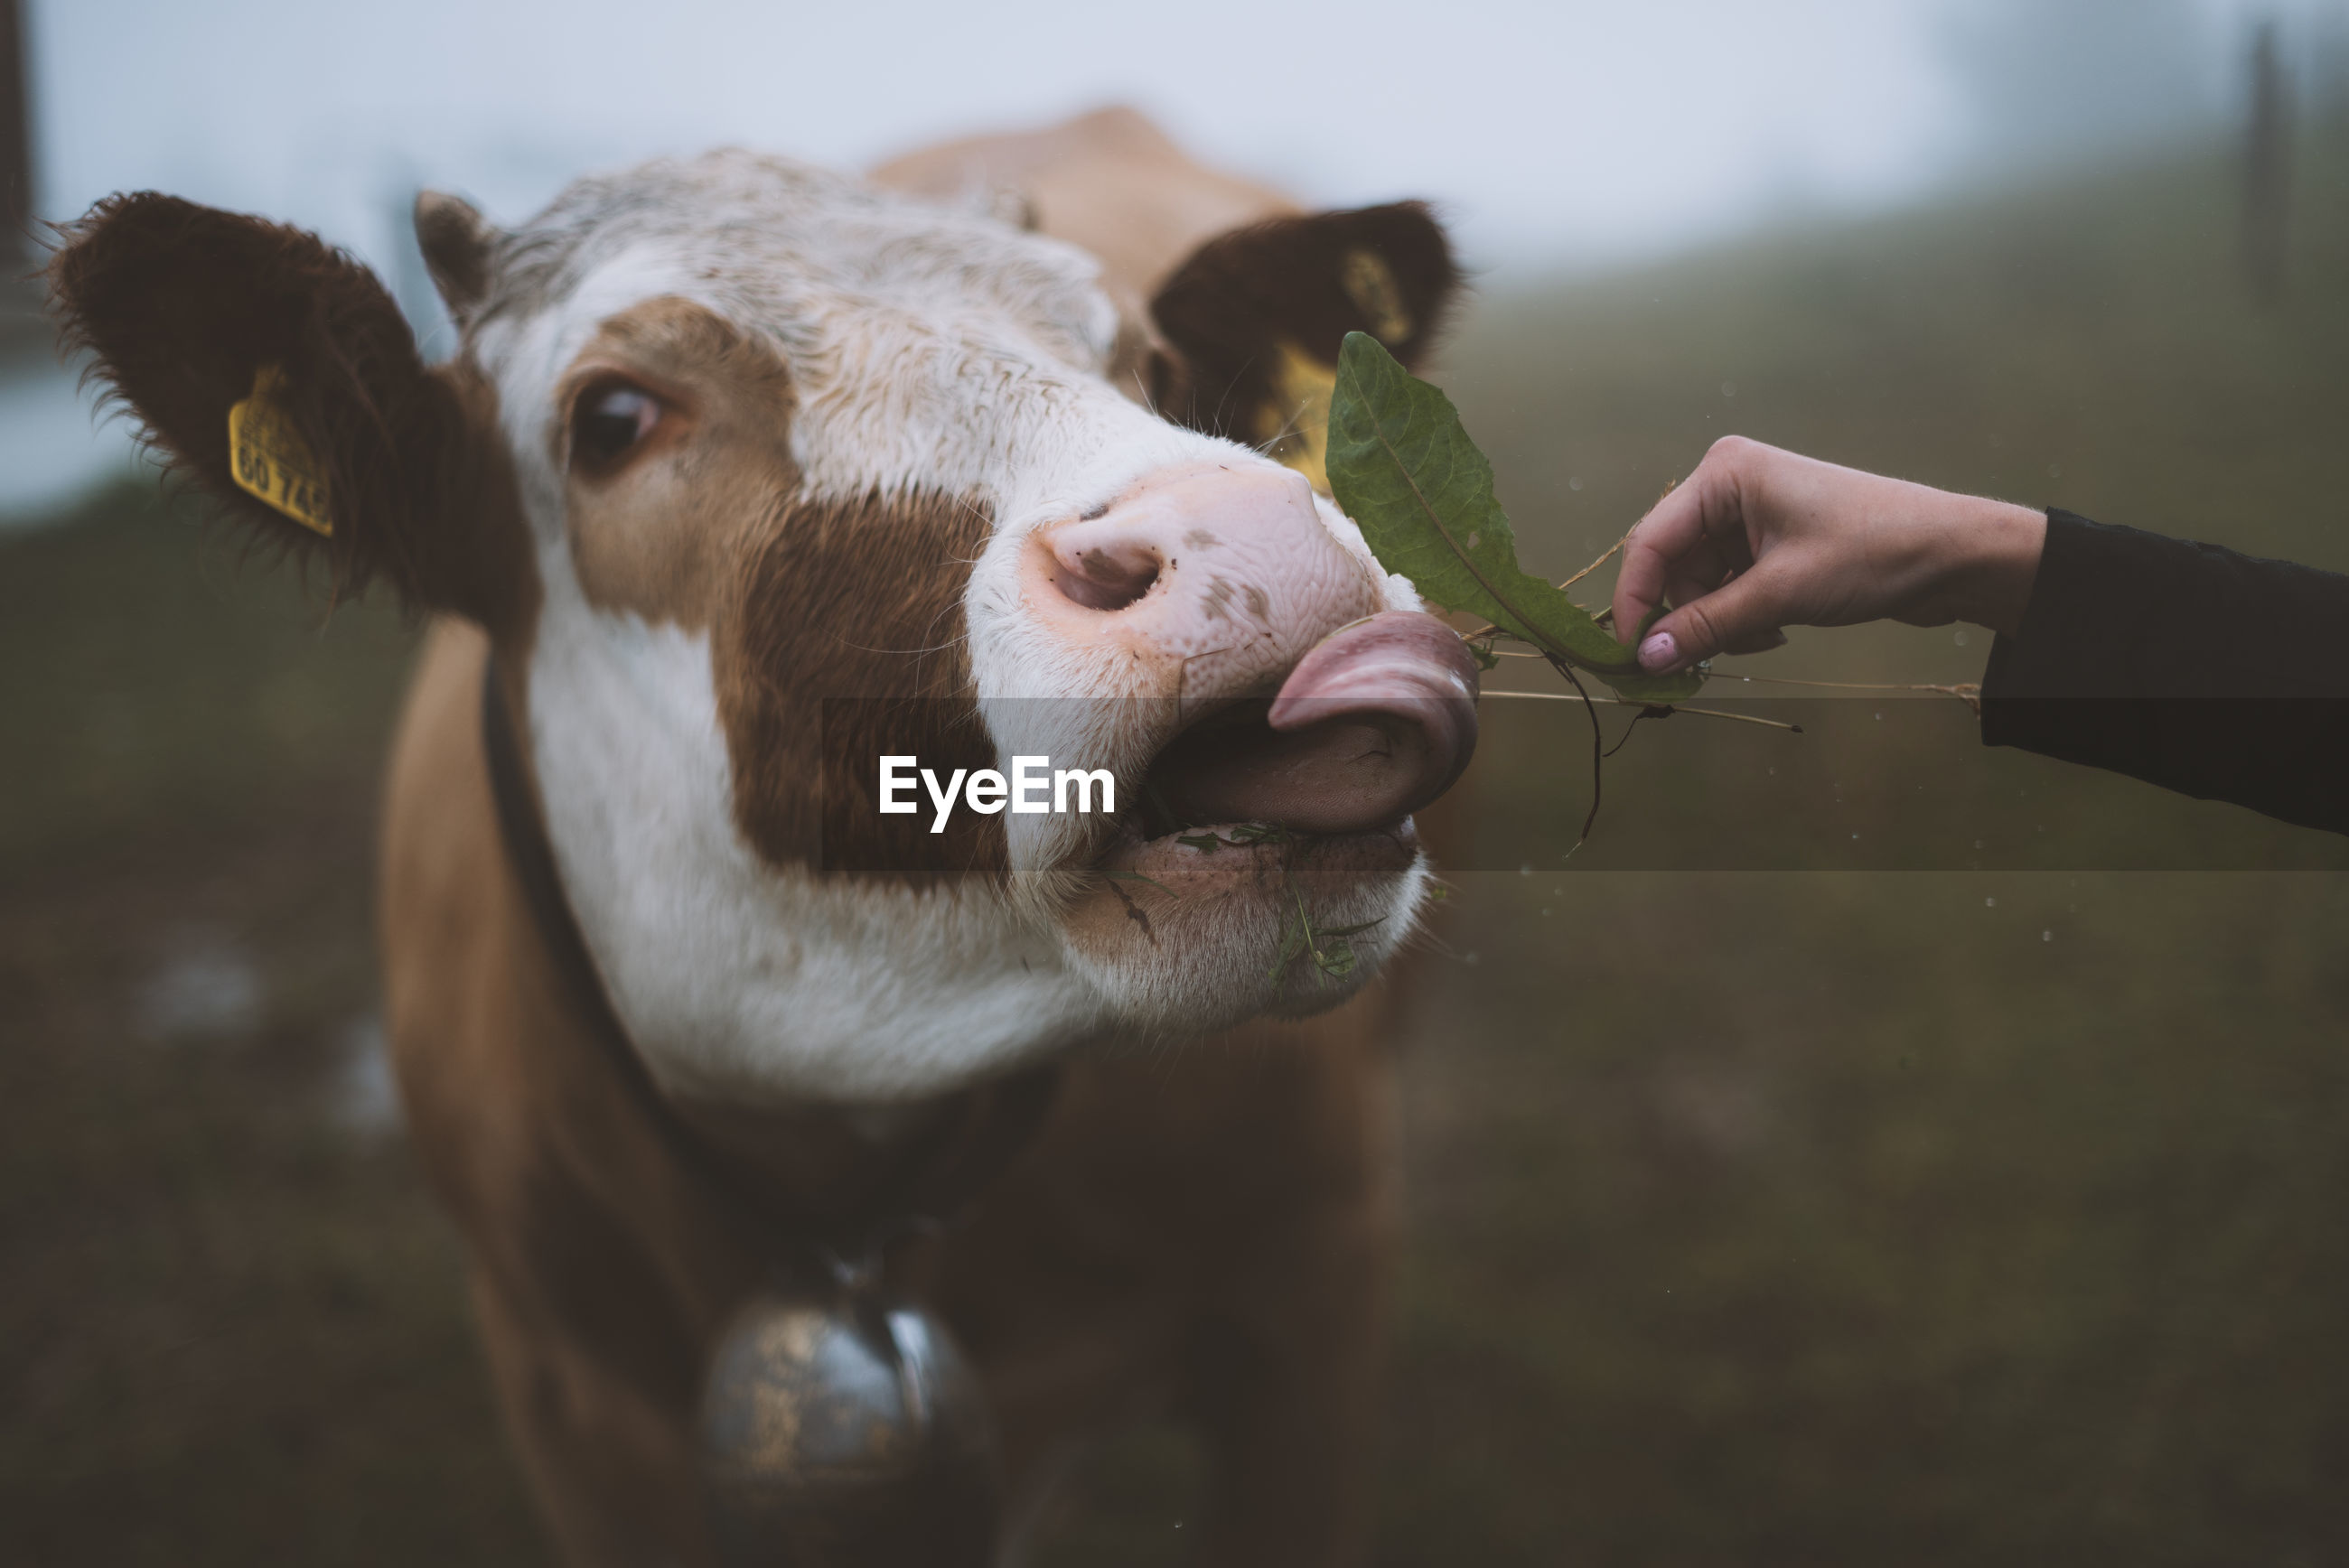 Cropped image of hand feeding cow